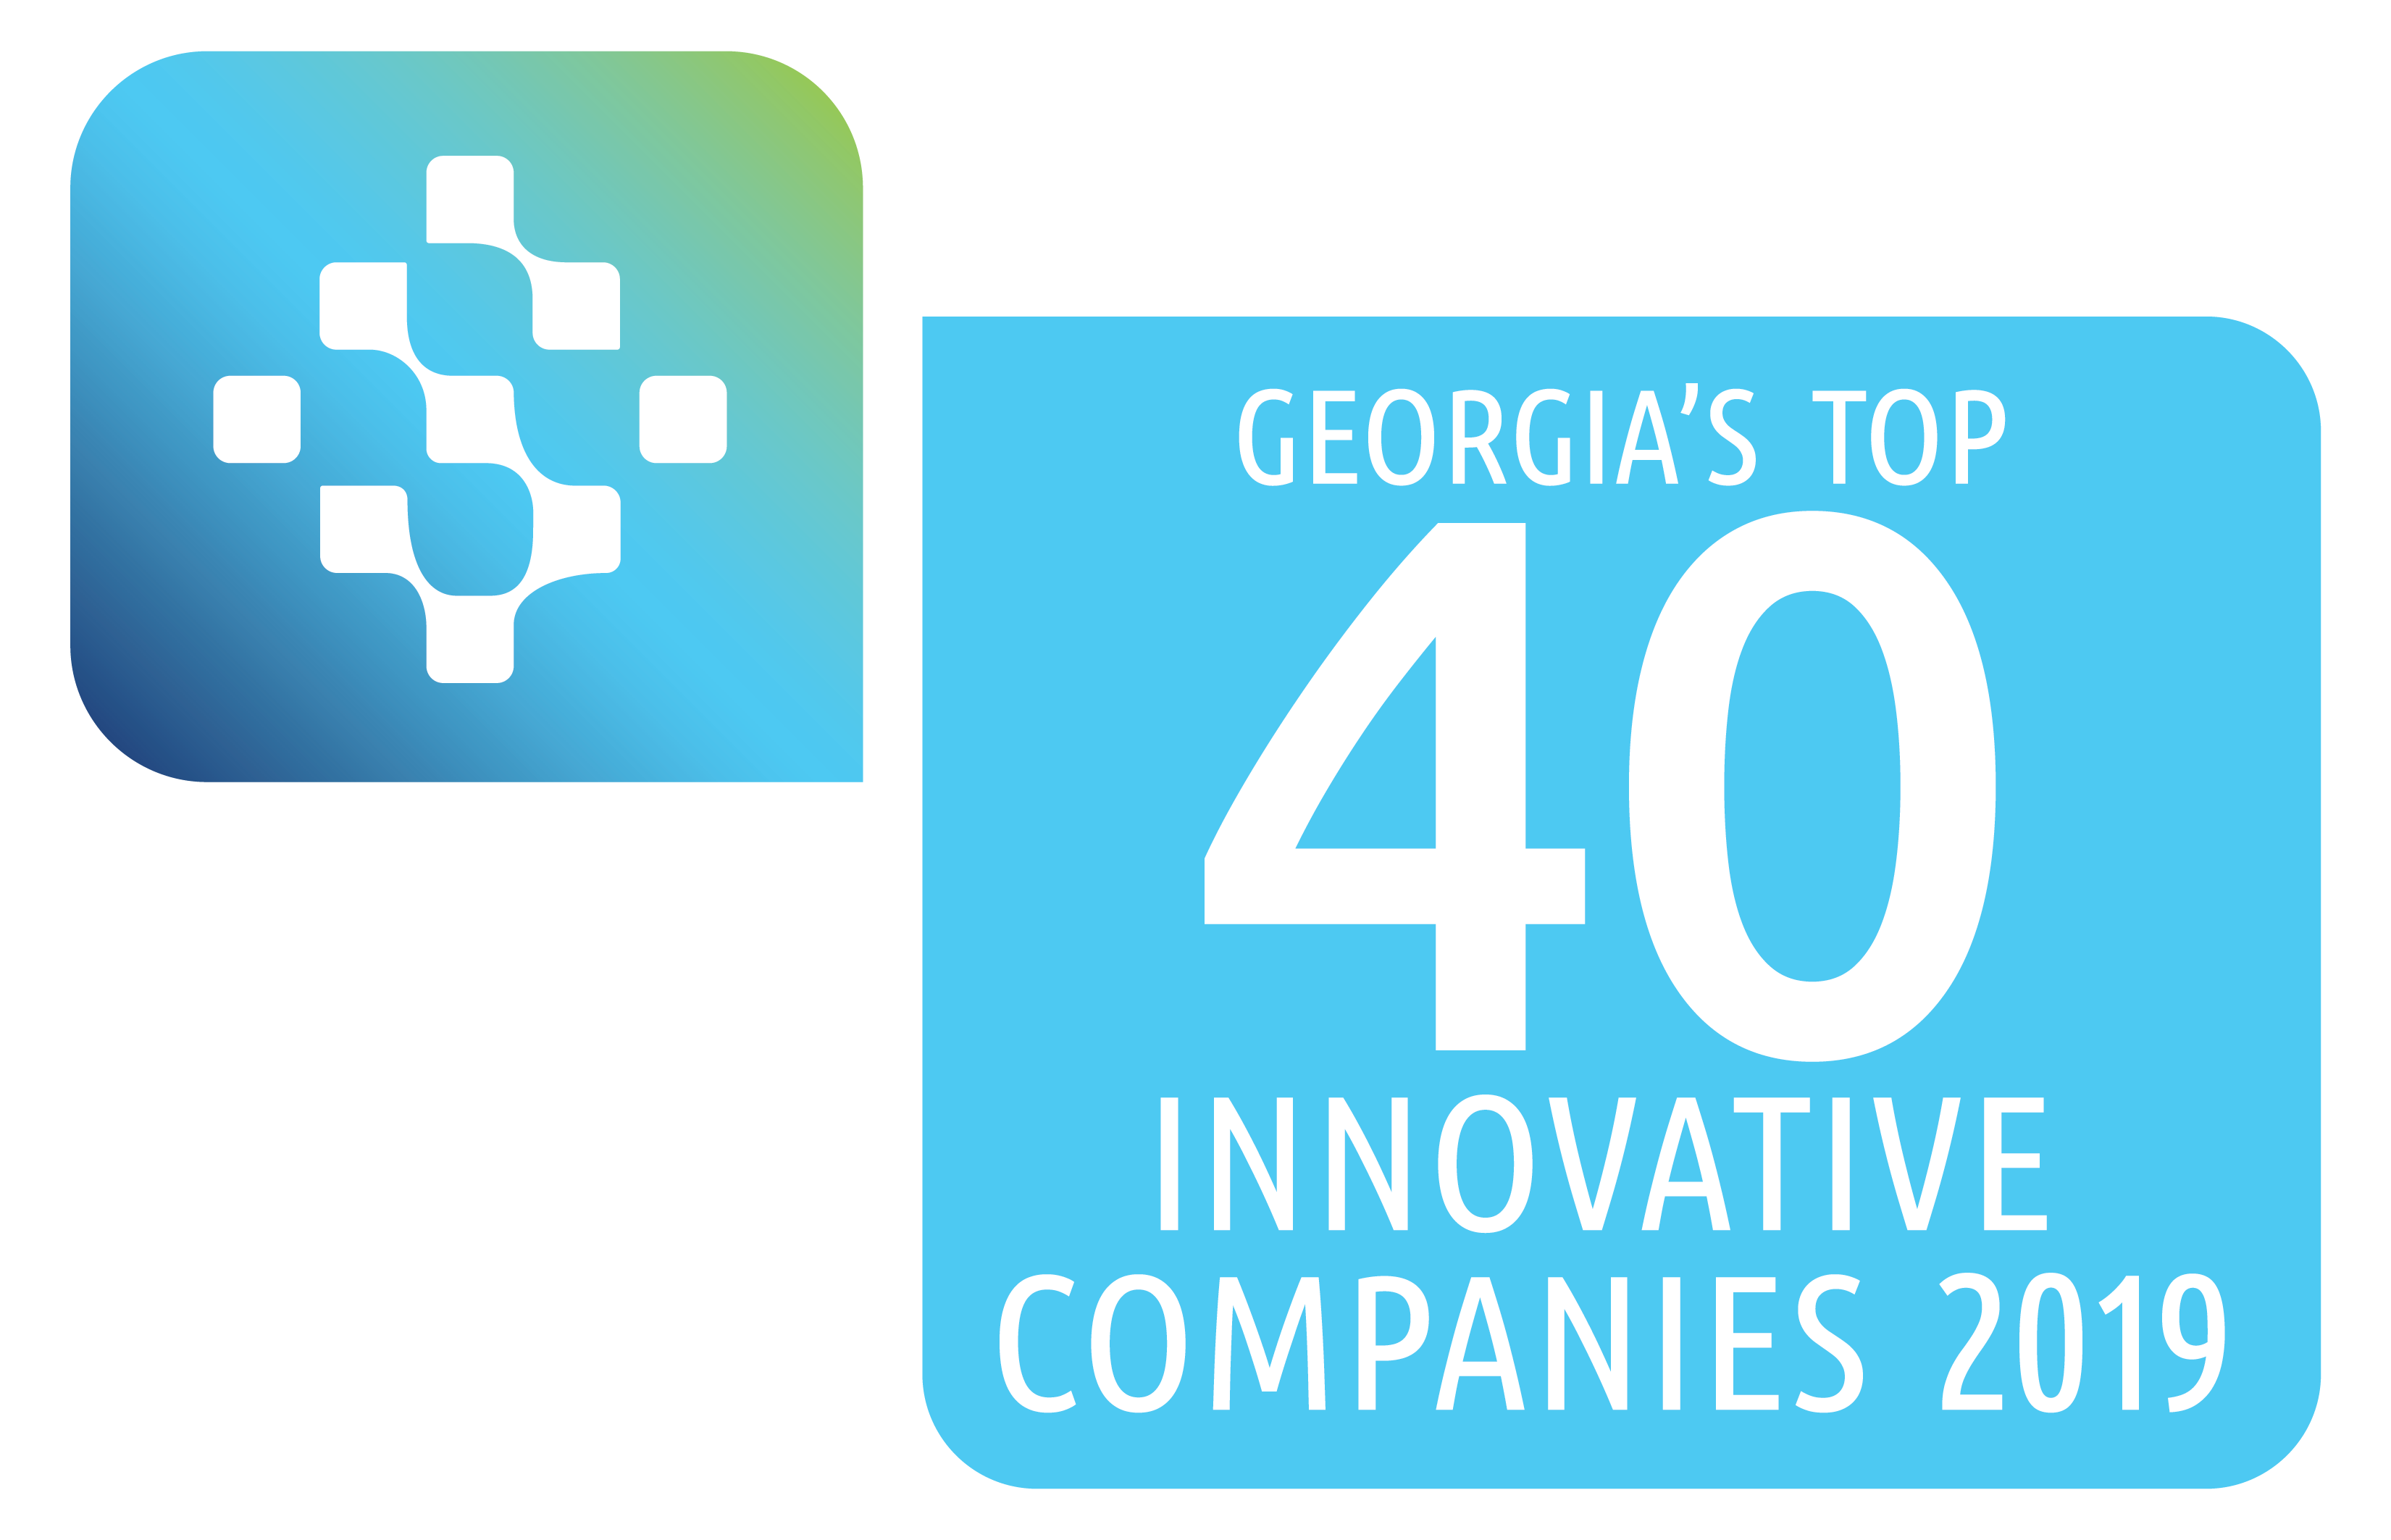 Georgia's Top 40 Innovative Companies 2019